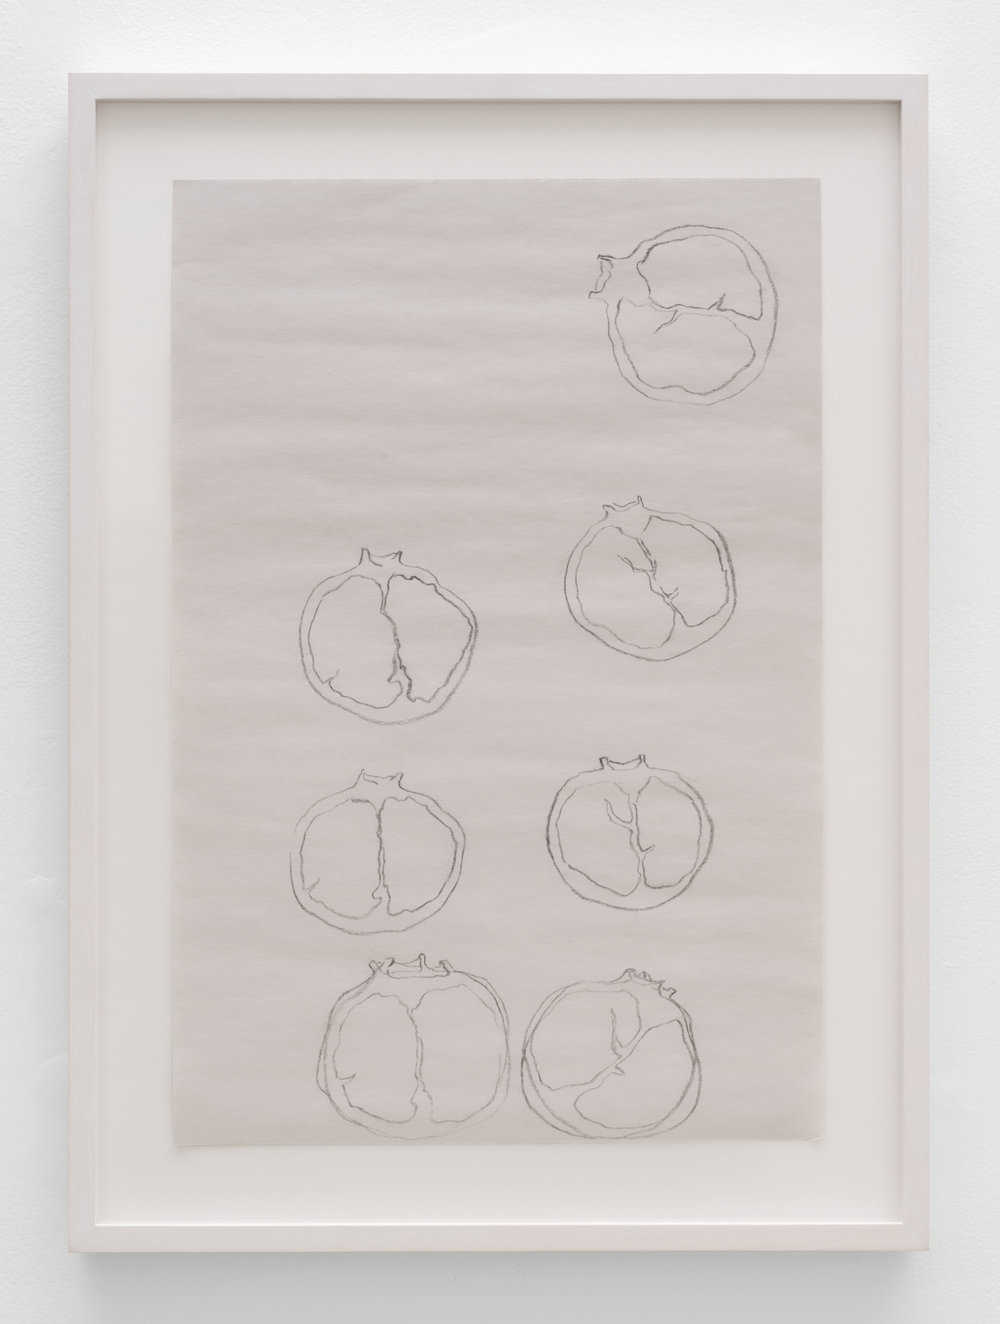 Eli Farahmand, Pomegranete, 2017, graphite on newsprint